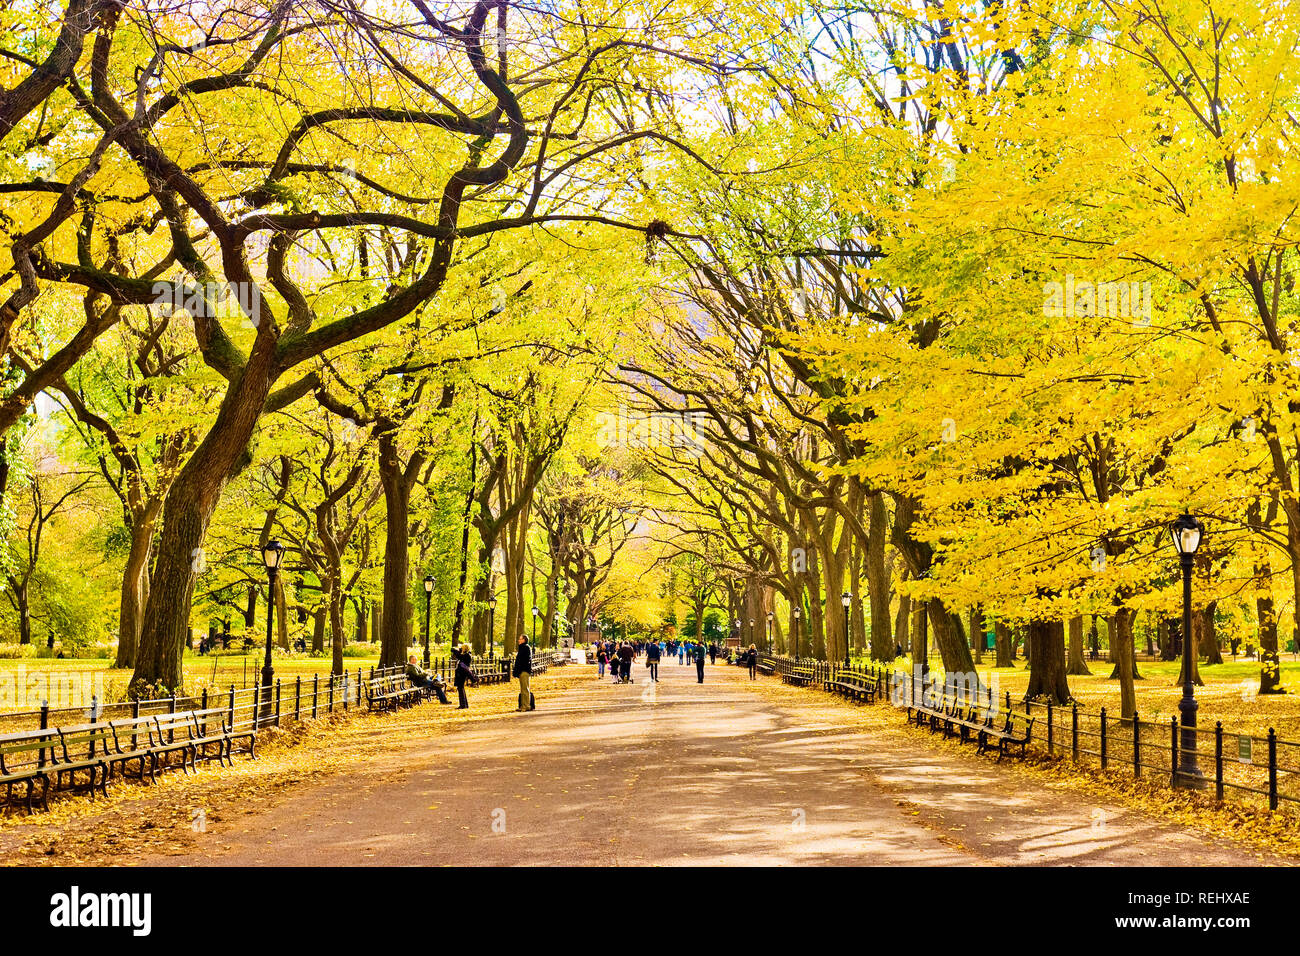 The Mall Central Park Autumn New York City Stock Photo